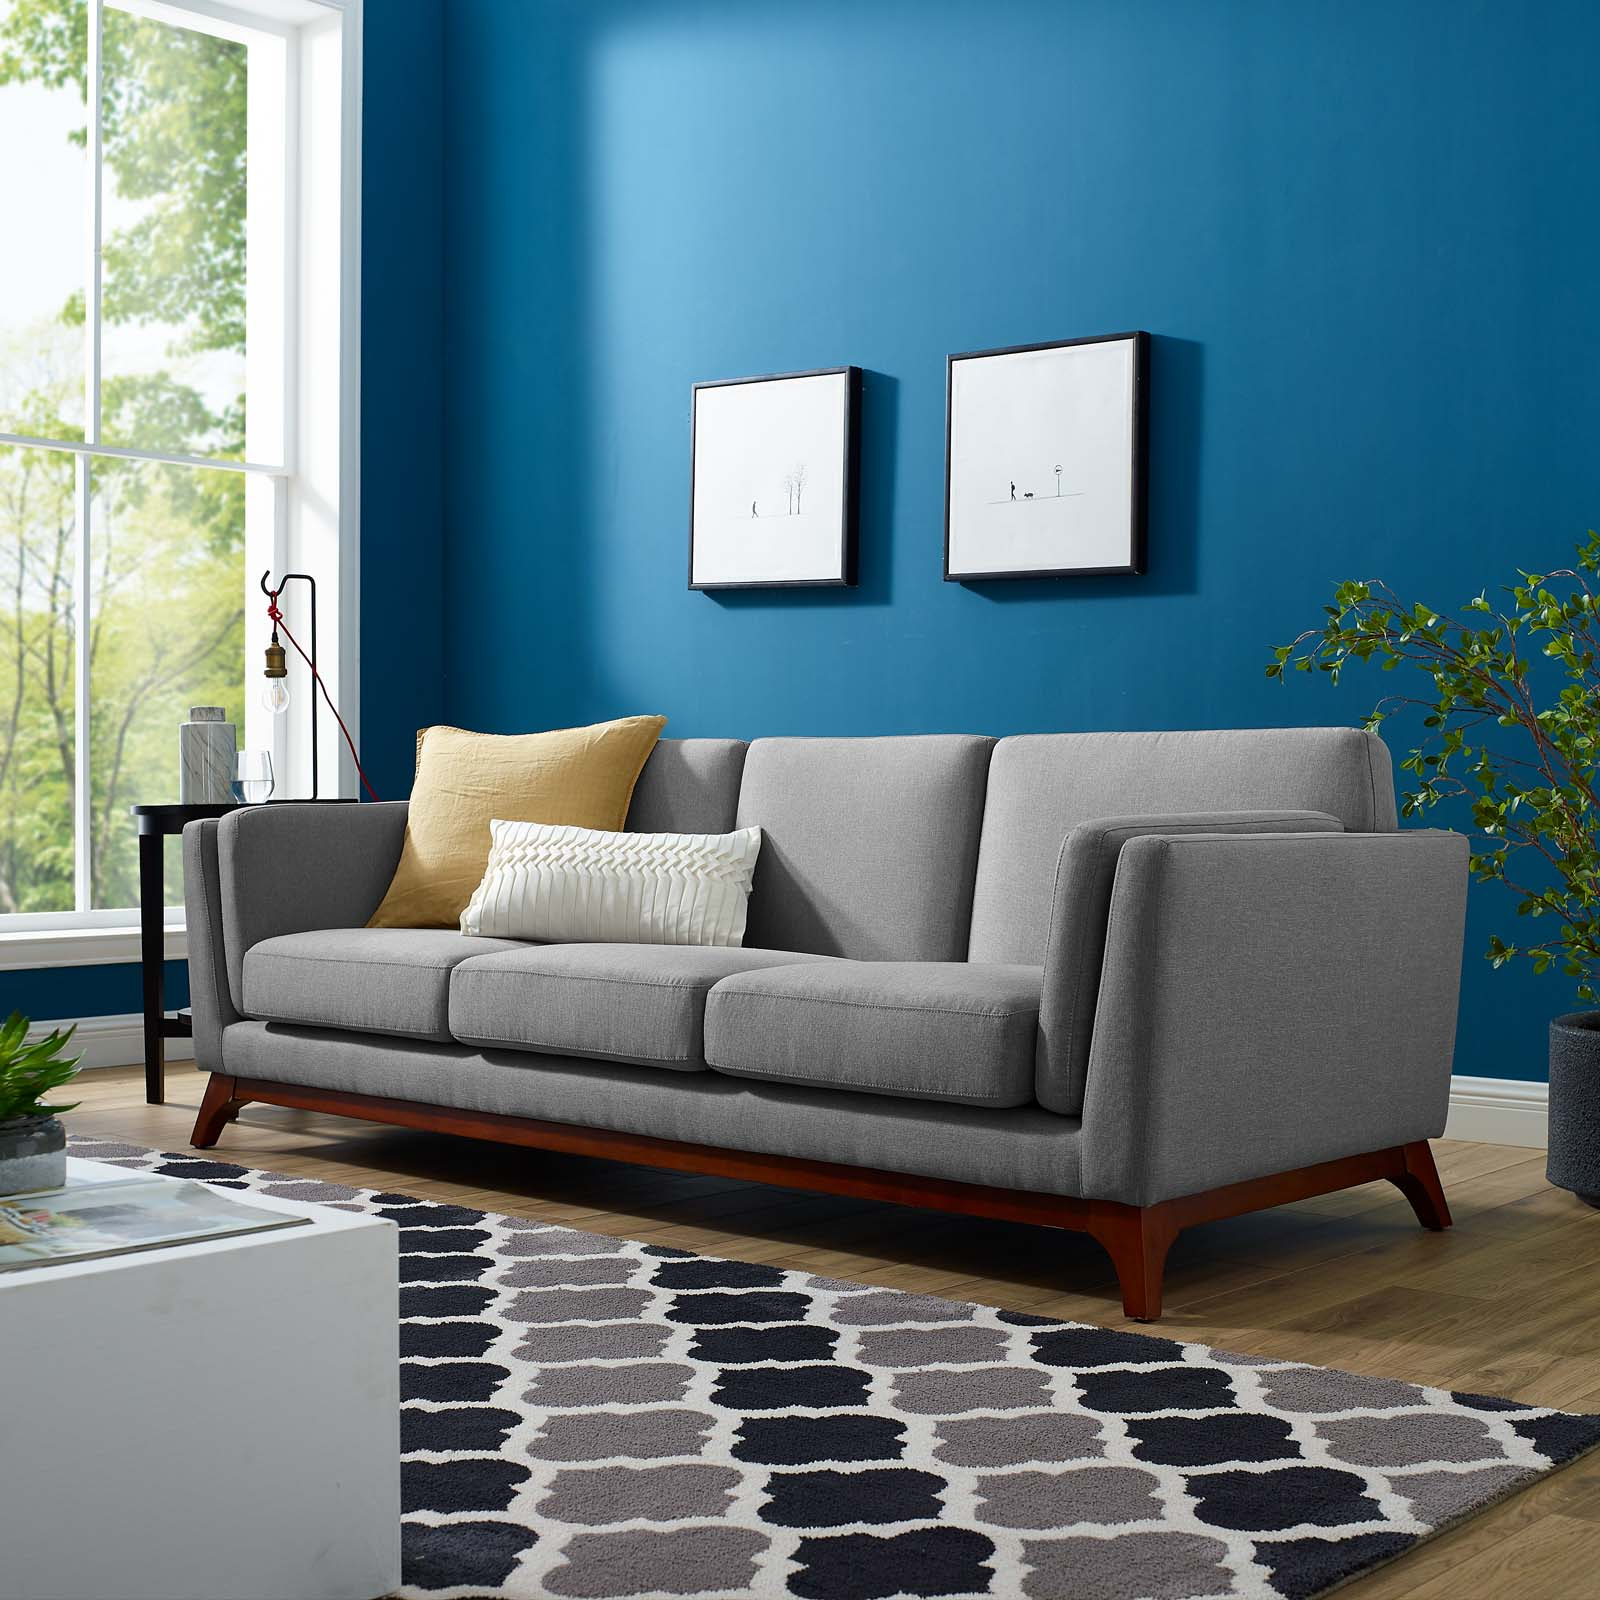 Modway Chance Fabric Upholstered Sofa, Multiple Colors Throughout Fabric Sofas (View 5 of 15)